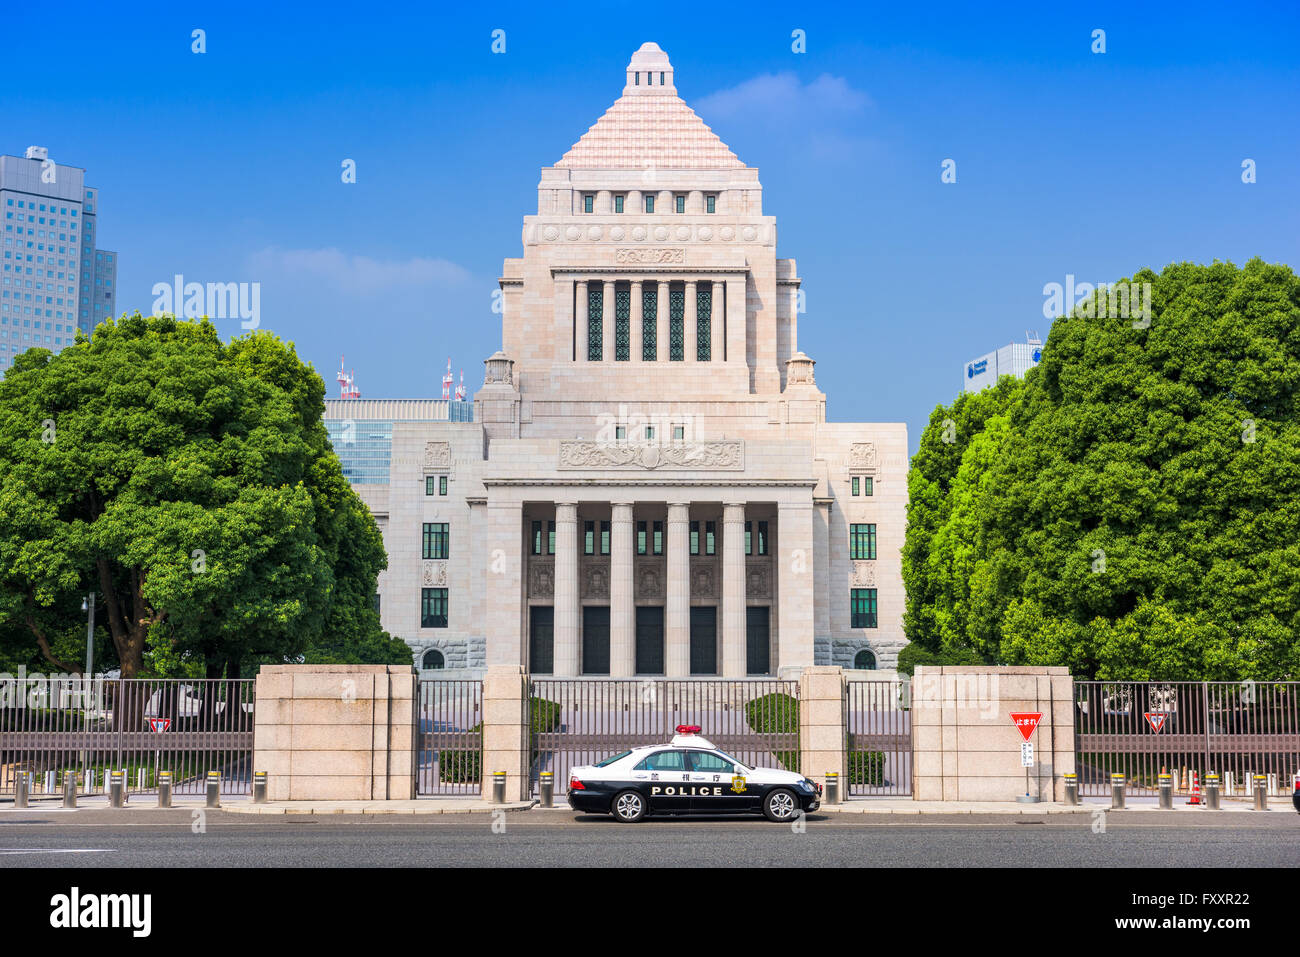 TOKYO, JAPAN - JULY 31 2015: A police crusier below The National Diet Building of Japan. Stock Photo